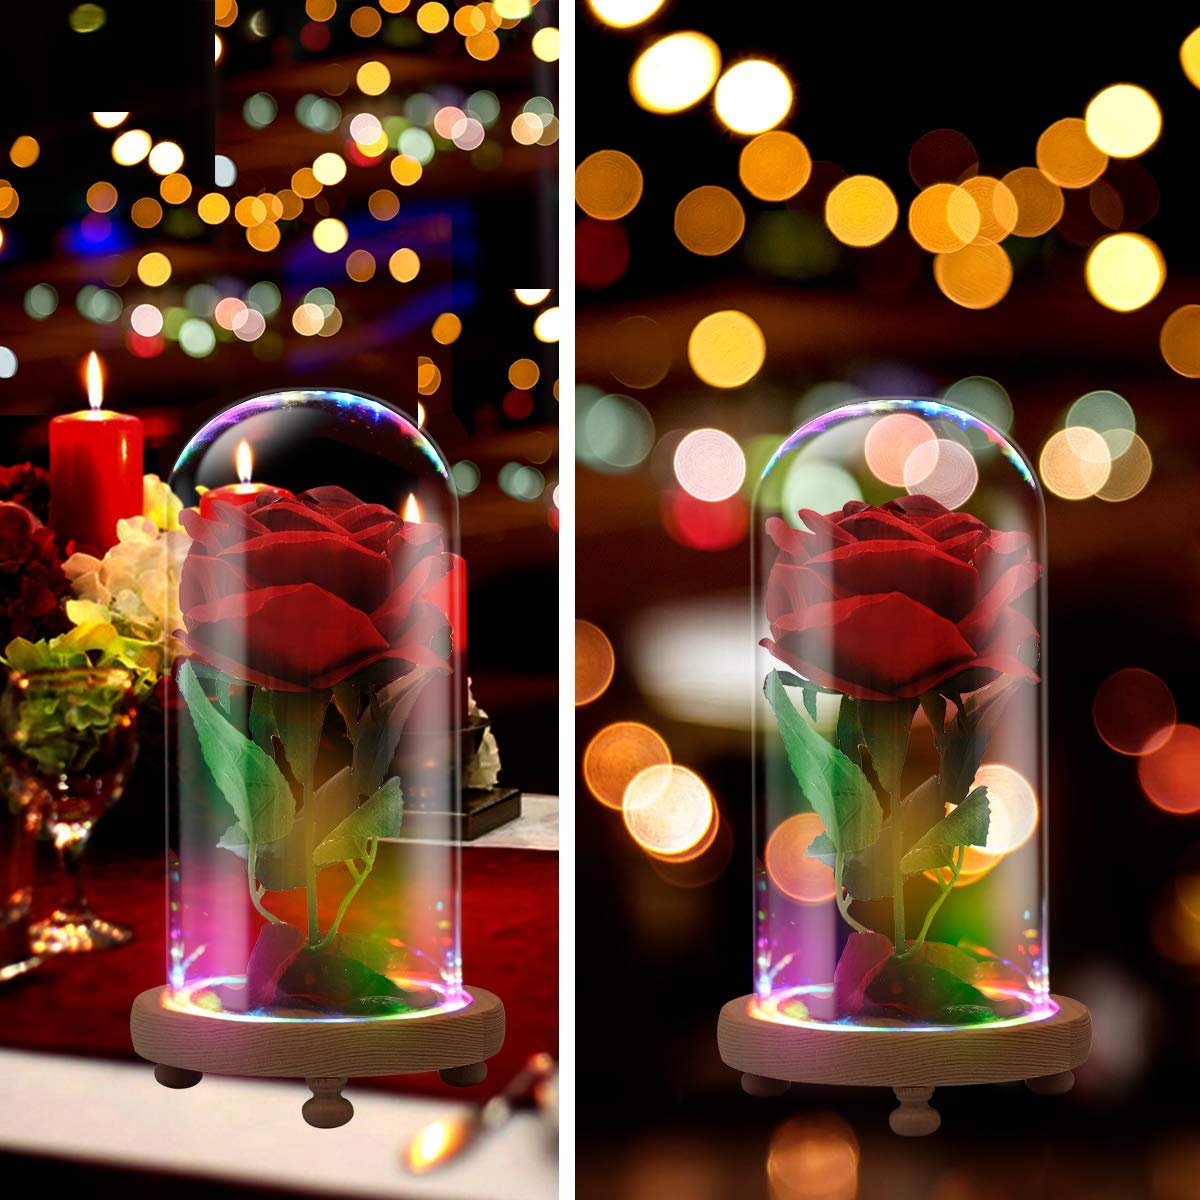 jiabang Red Velvet Rose Colorful Night Light in Glass Dome - Romantic Gift for Her | Movie Theme Party Wedding Decoration